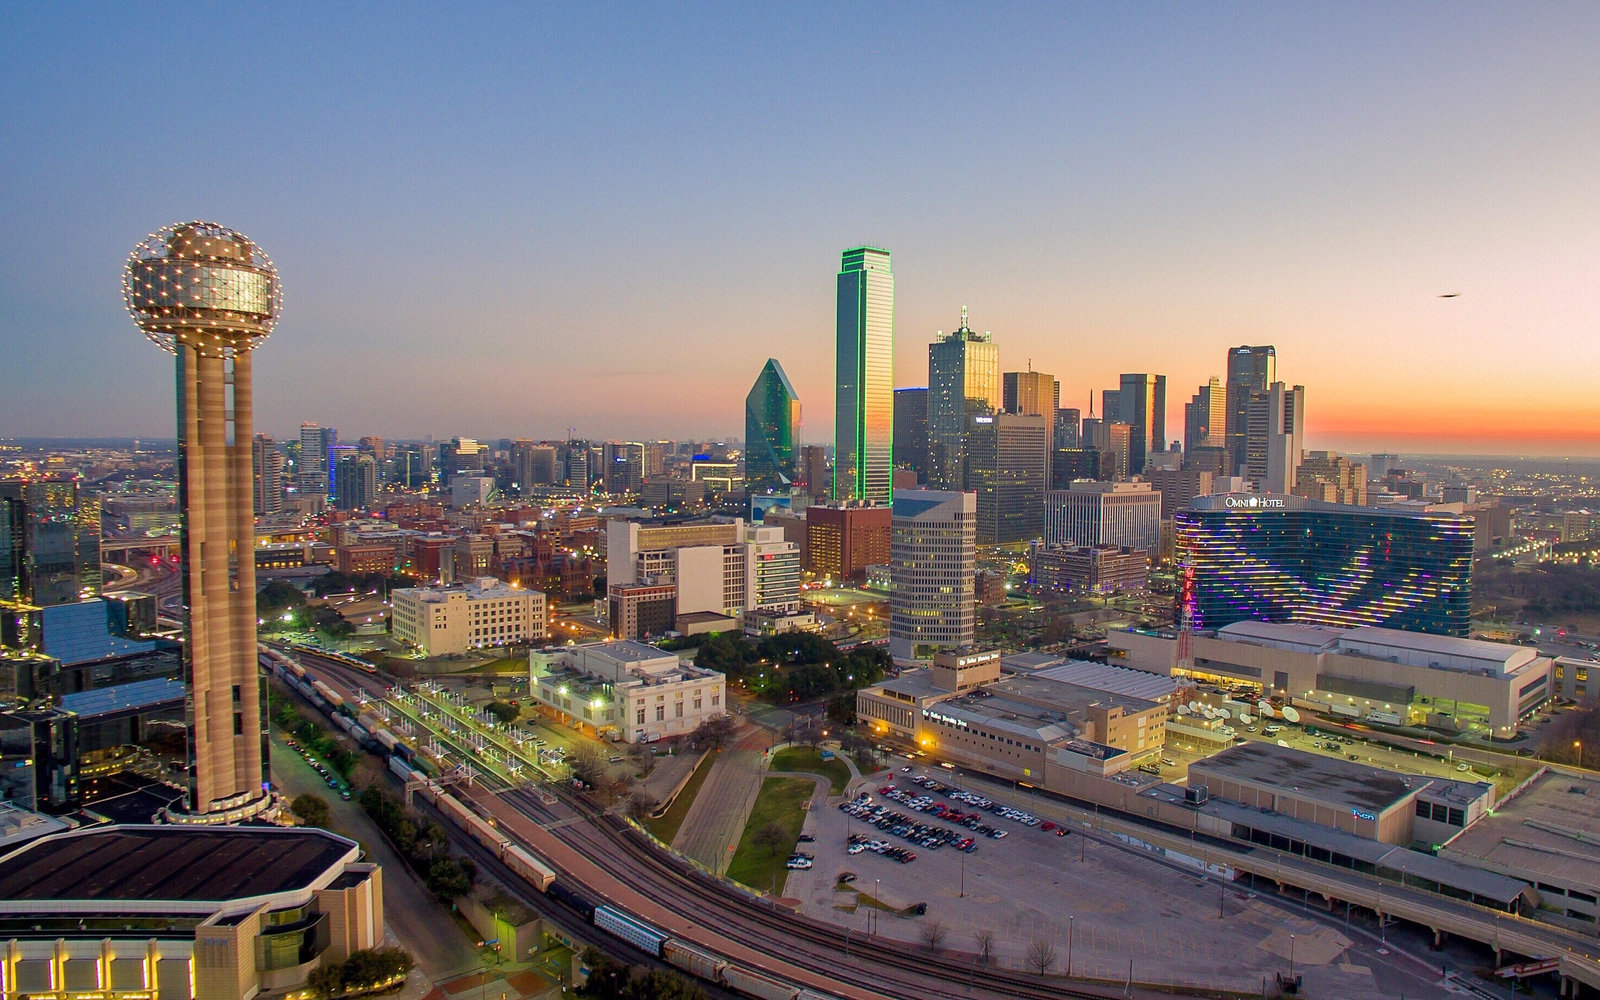 8. Dallas,  Texas